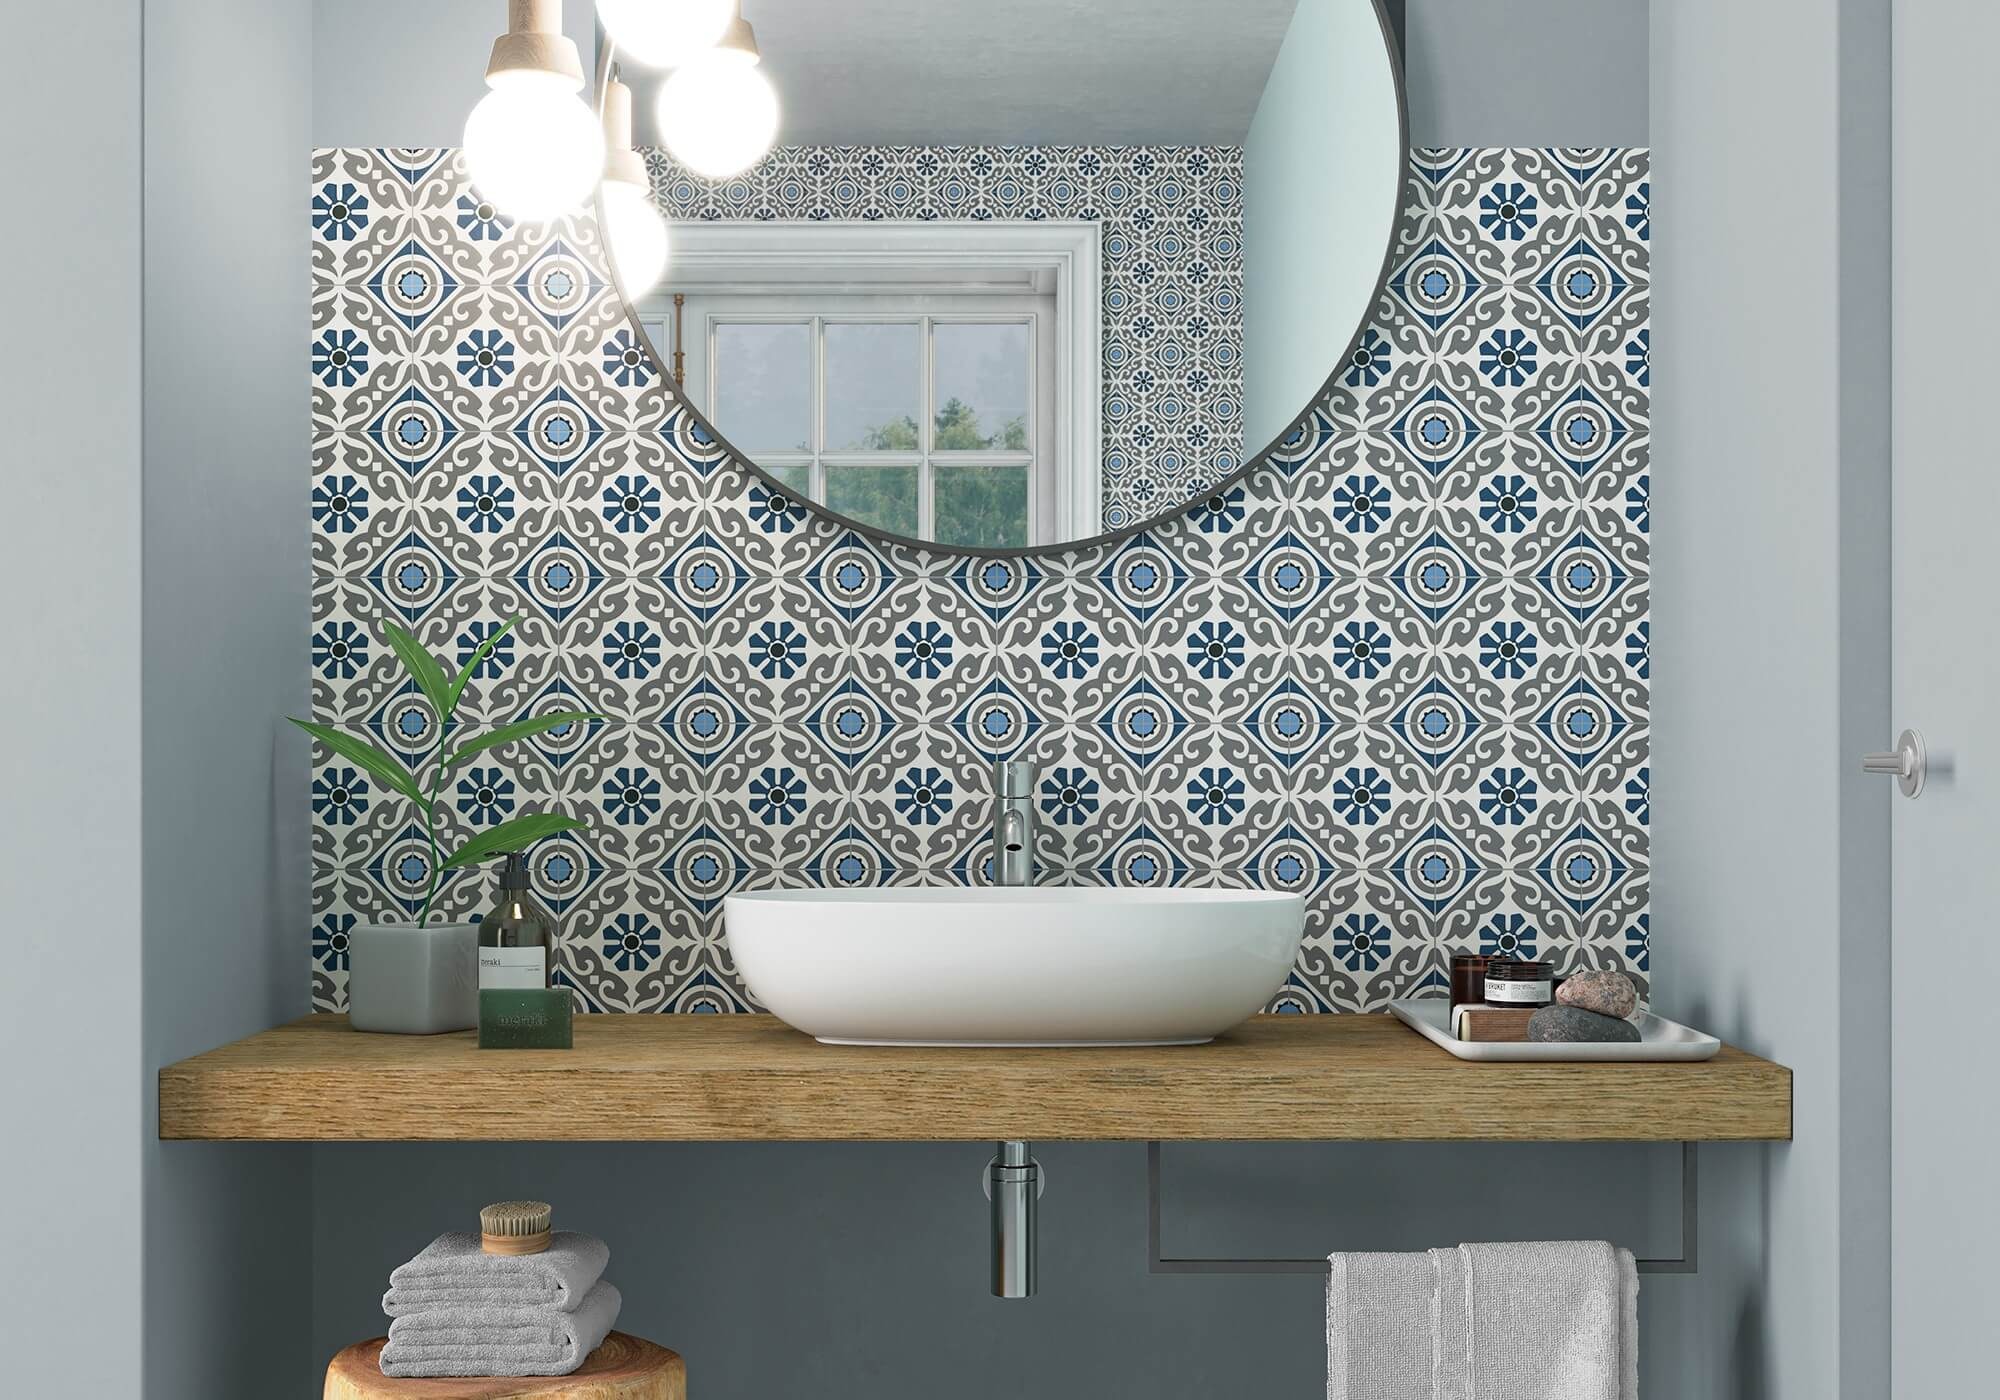 Musa Blue by Gayafores hydraulics porcelain tiles